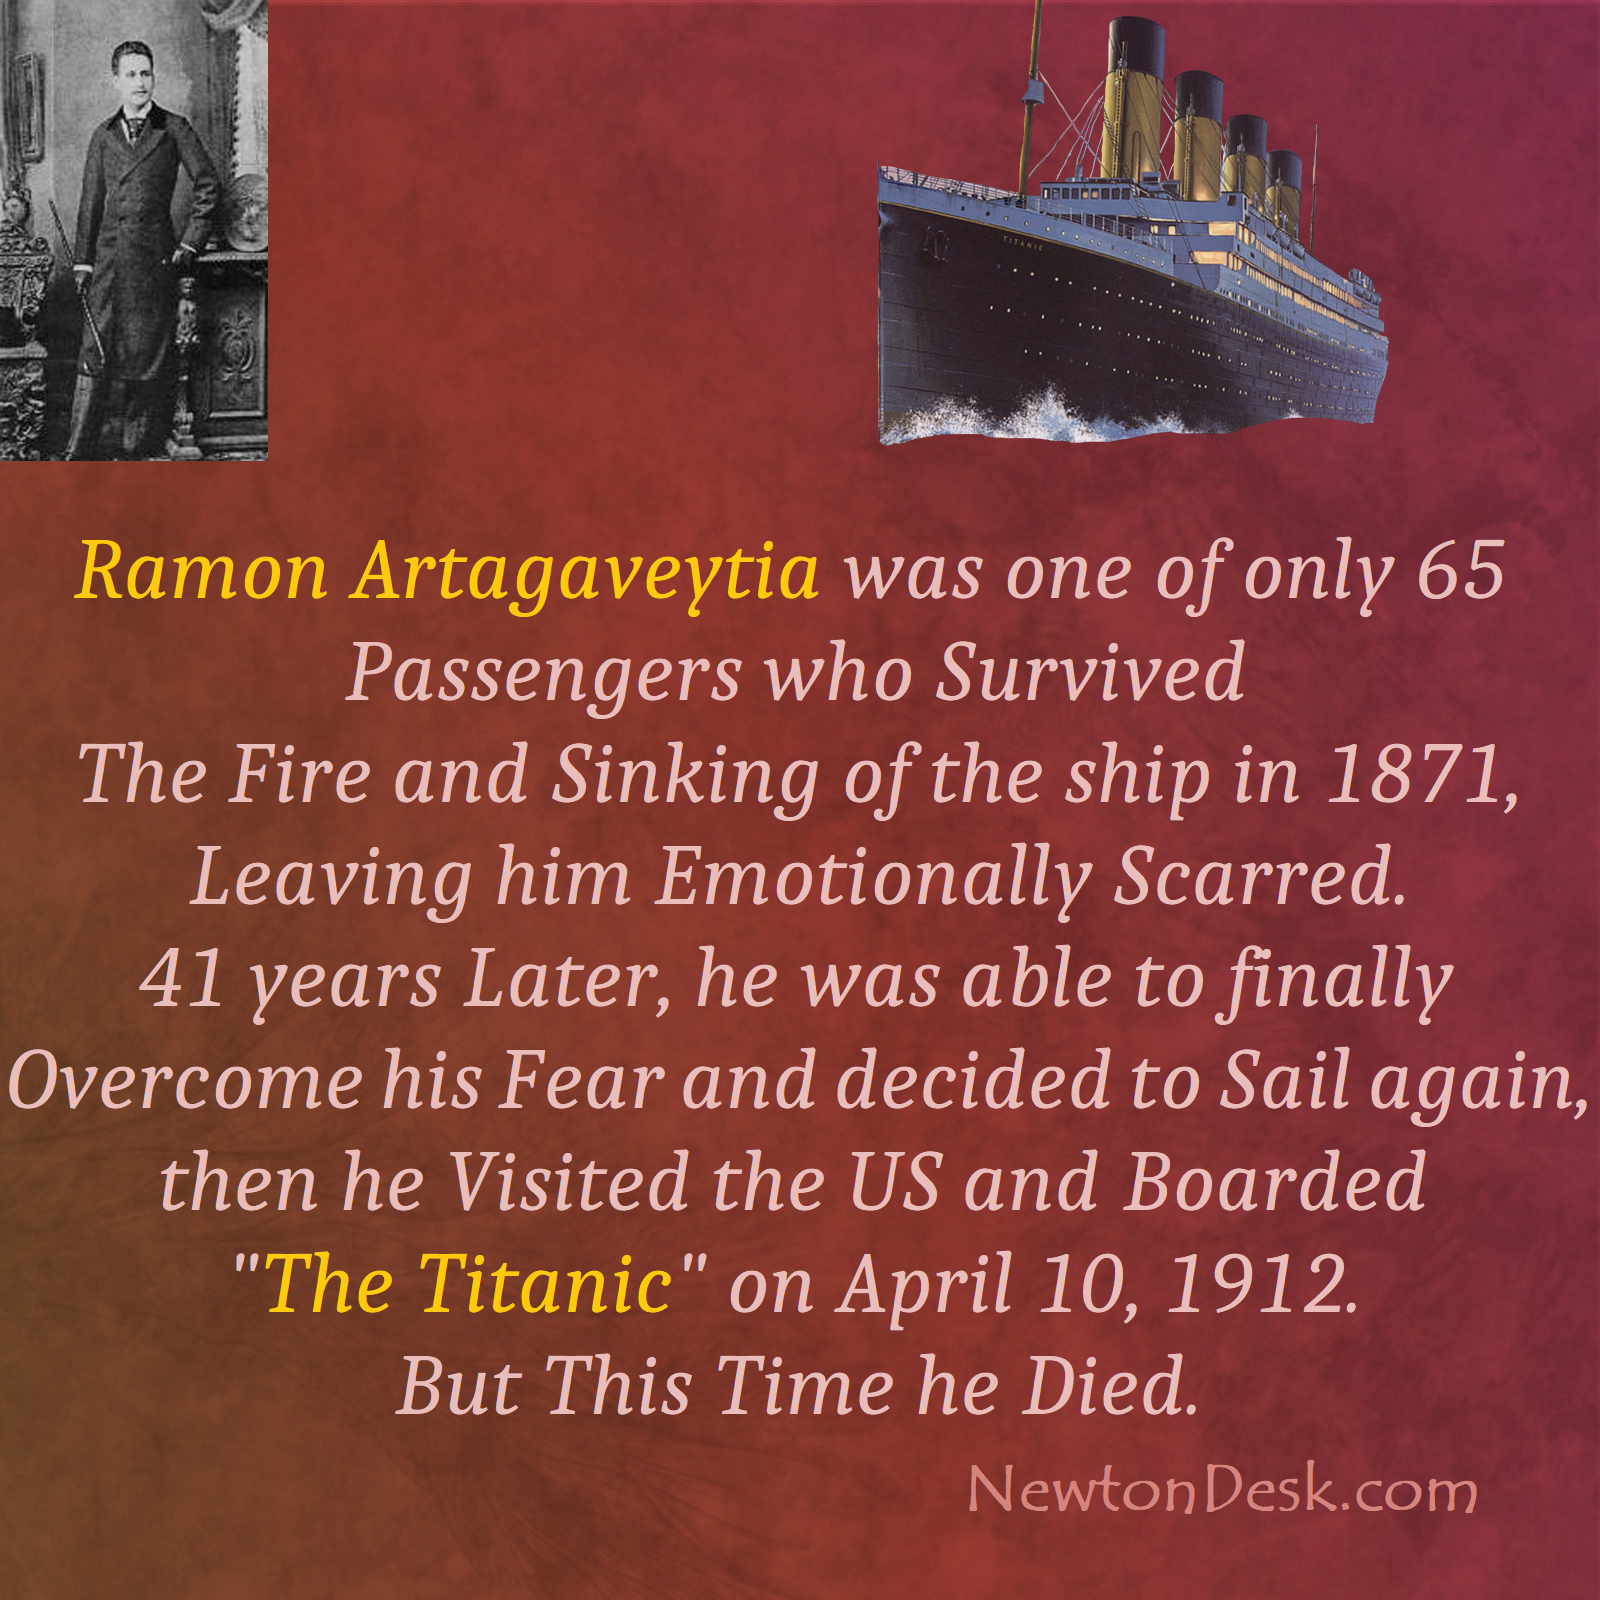 Ramon Artagaveytia Survived The Fire And Sinking of A Ship